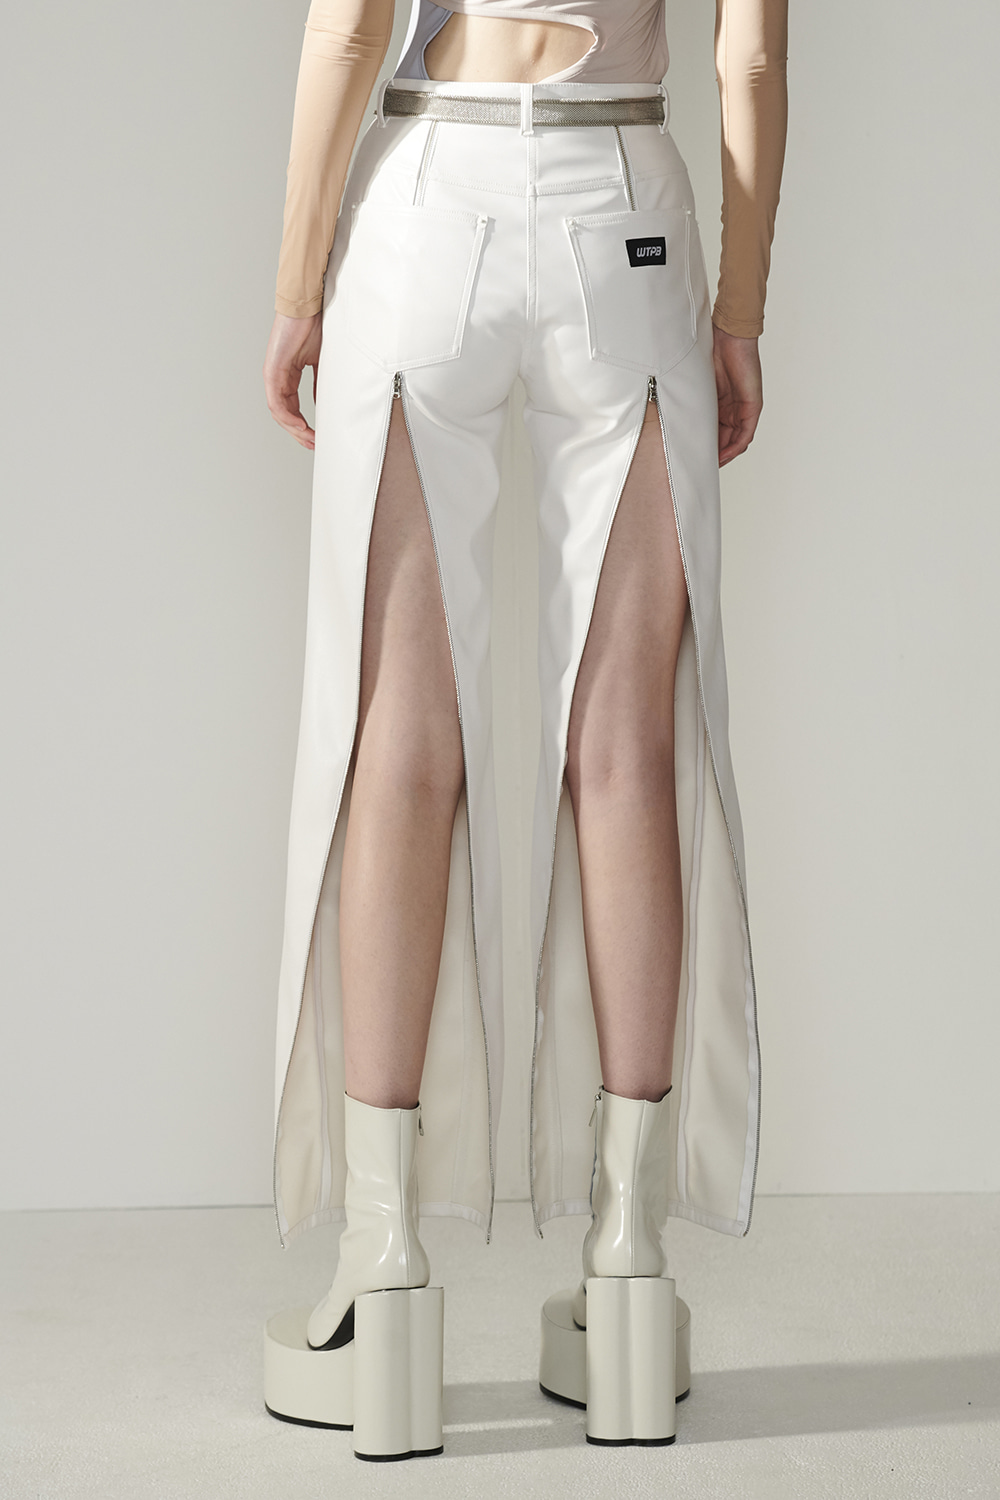 SS21 BACK-ZIP FAUX LEATHER WHITE PANTS